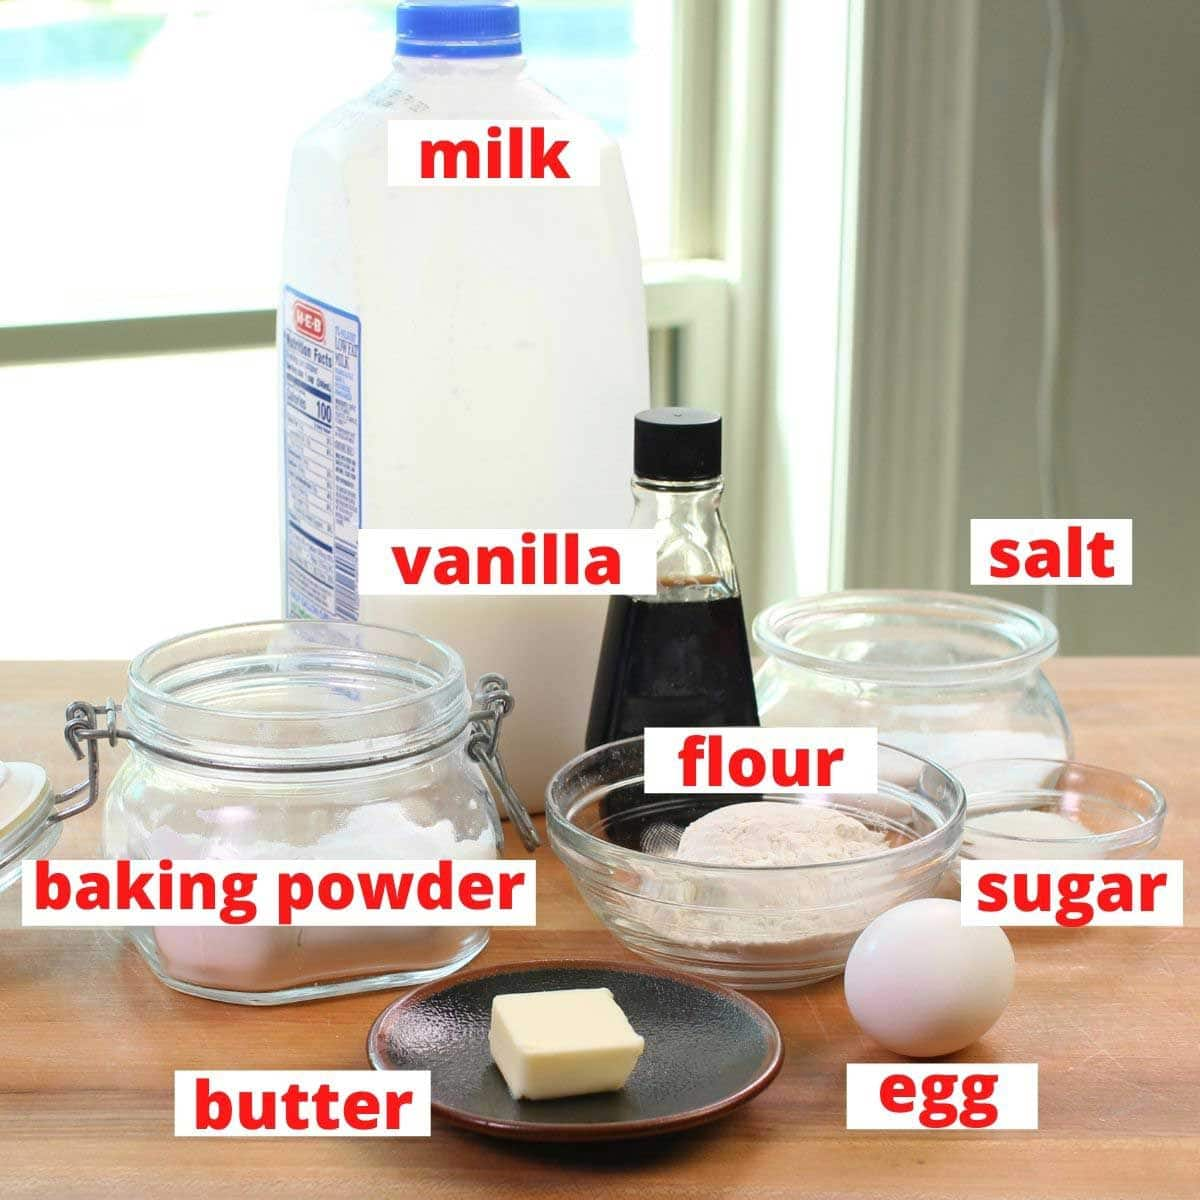 the ingredients needed for making waffles labeled and on a brown table.